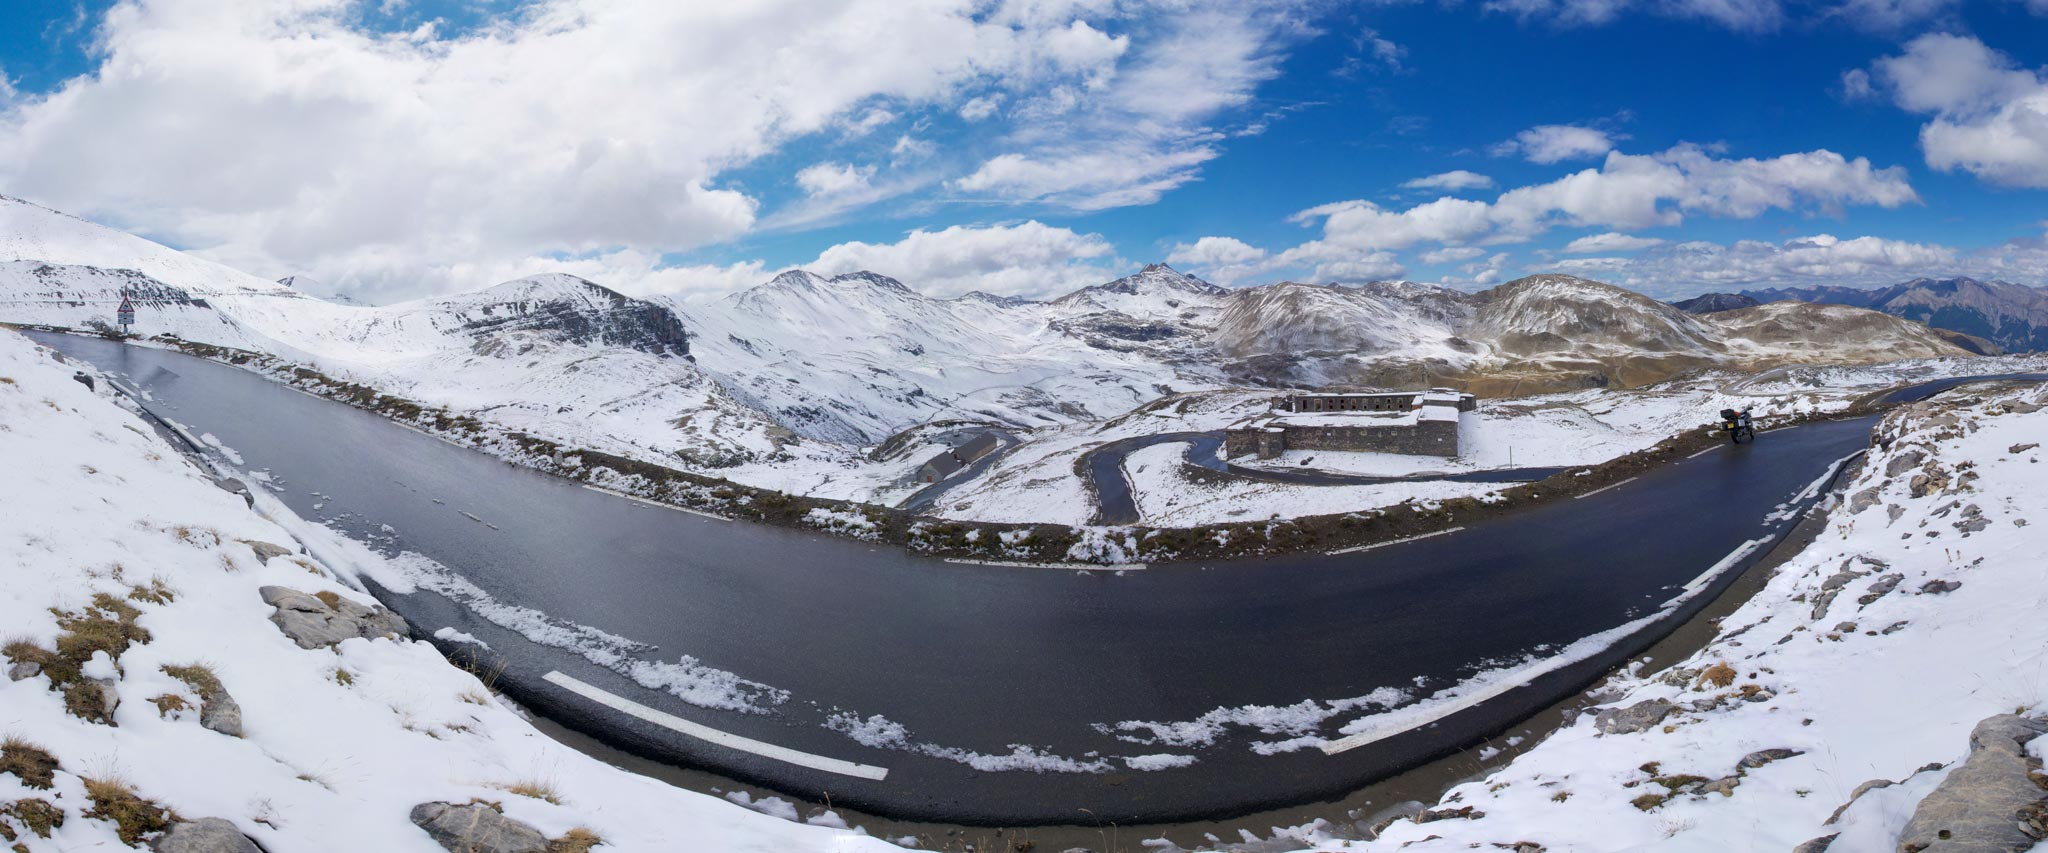 Wide panorama takes in snowy road to Col de la Bonette under blue skies and fluffy clouds